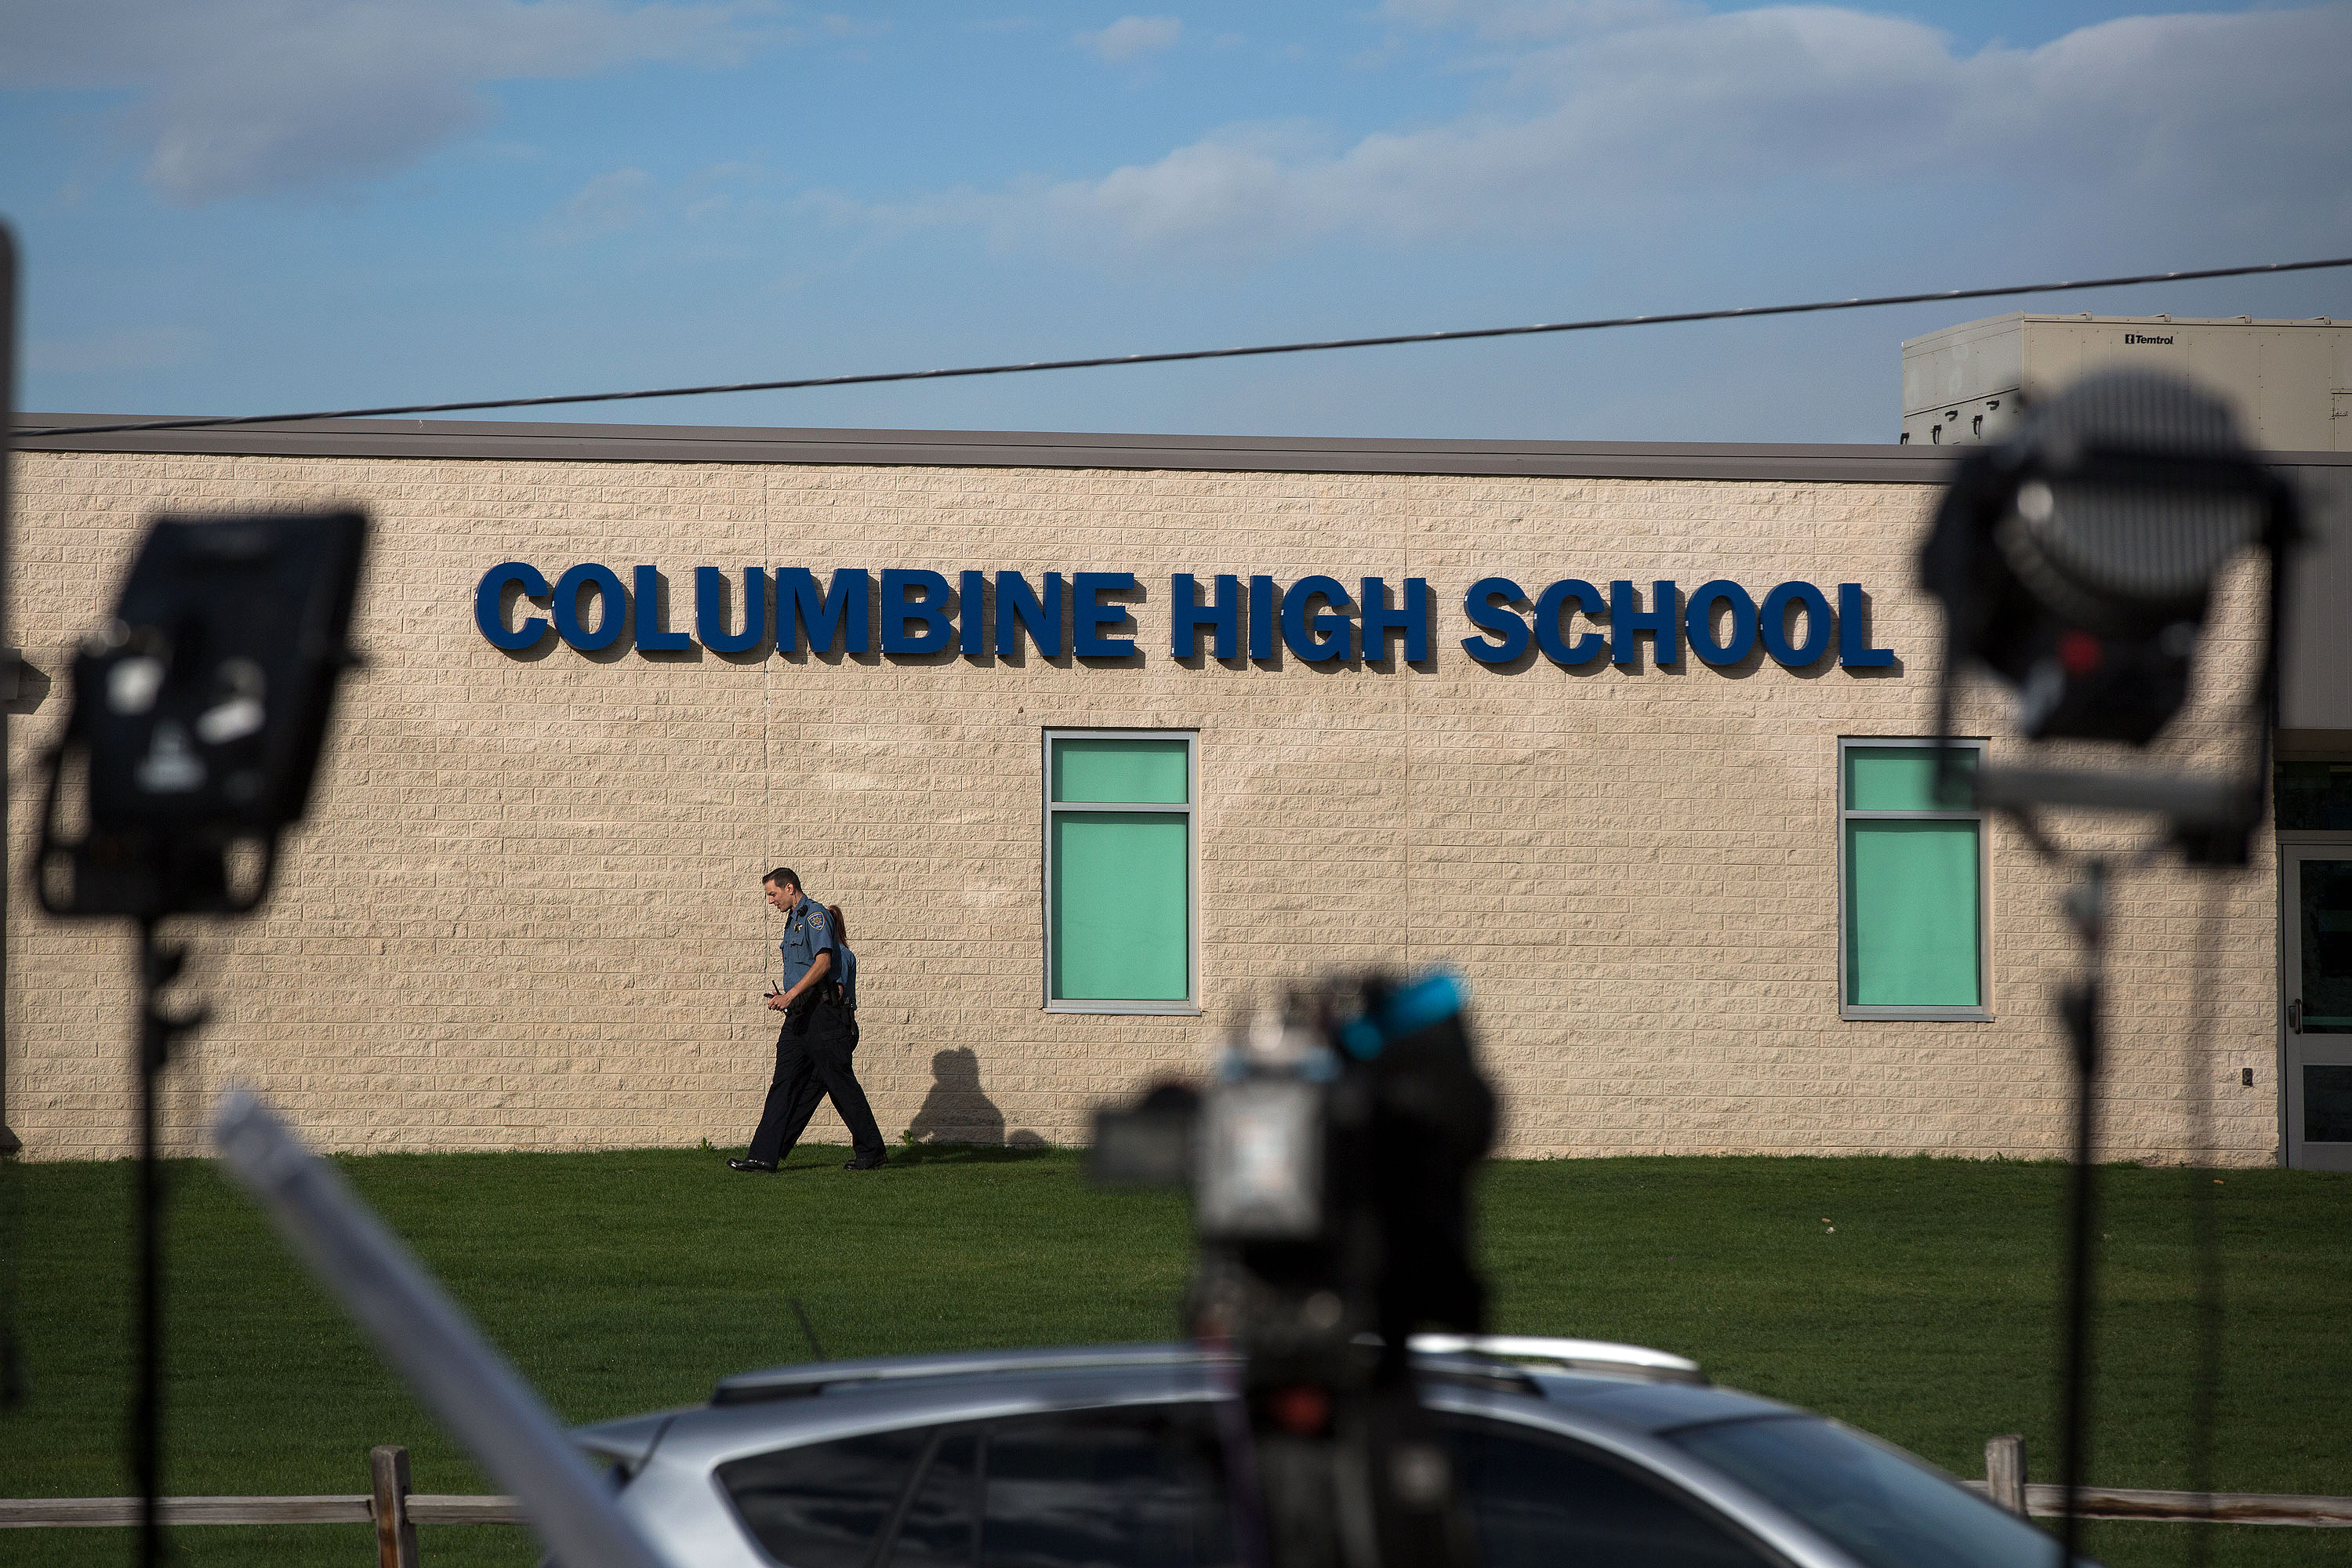 Photo: Columbine High School Building 1 HV 20190417 - DO NOT USE/REPEAT